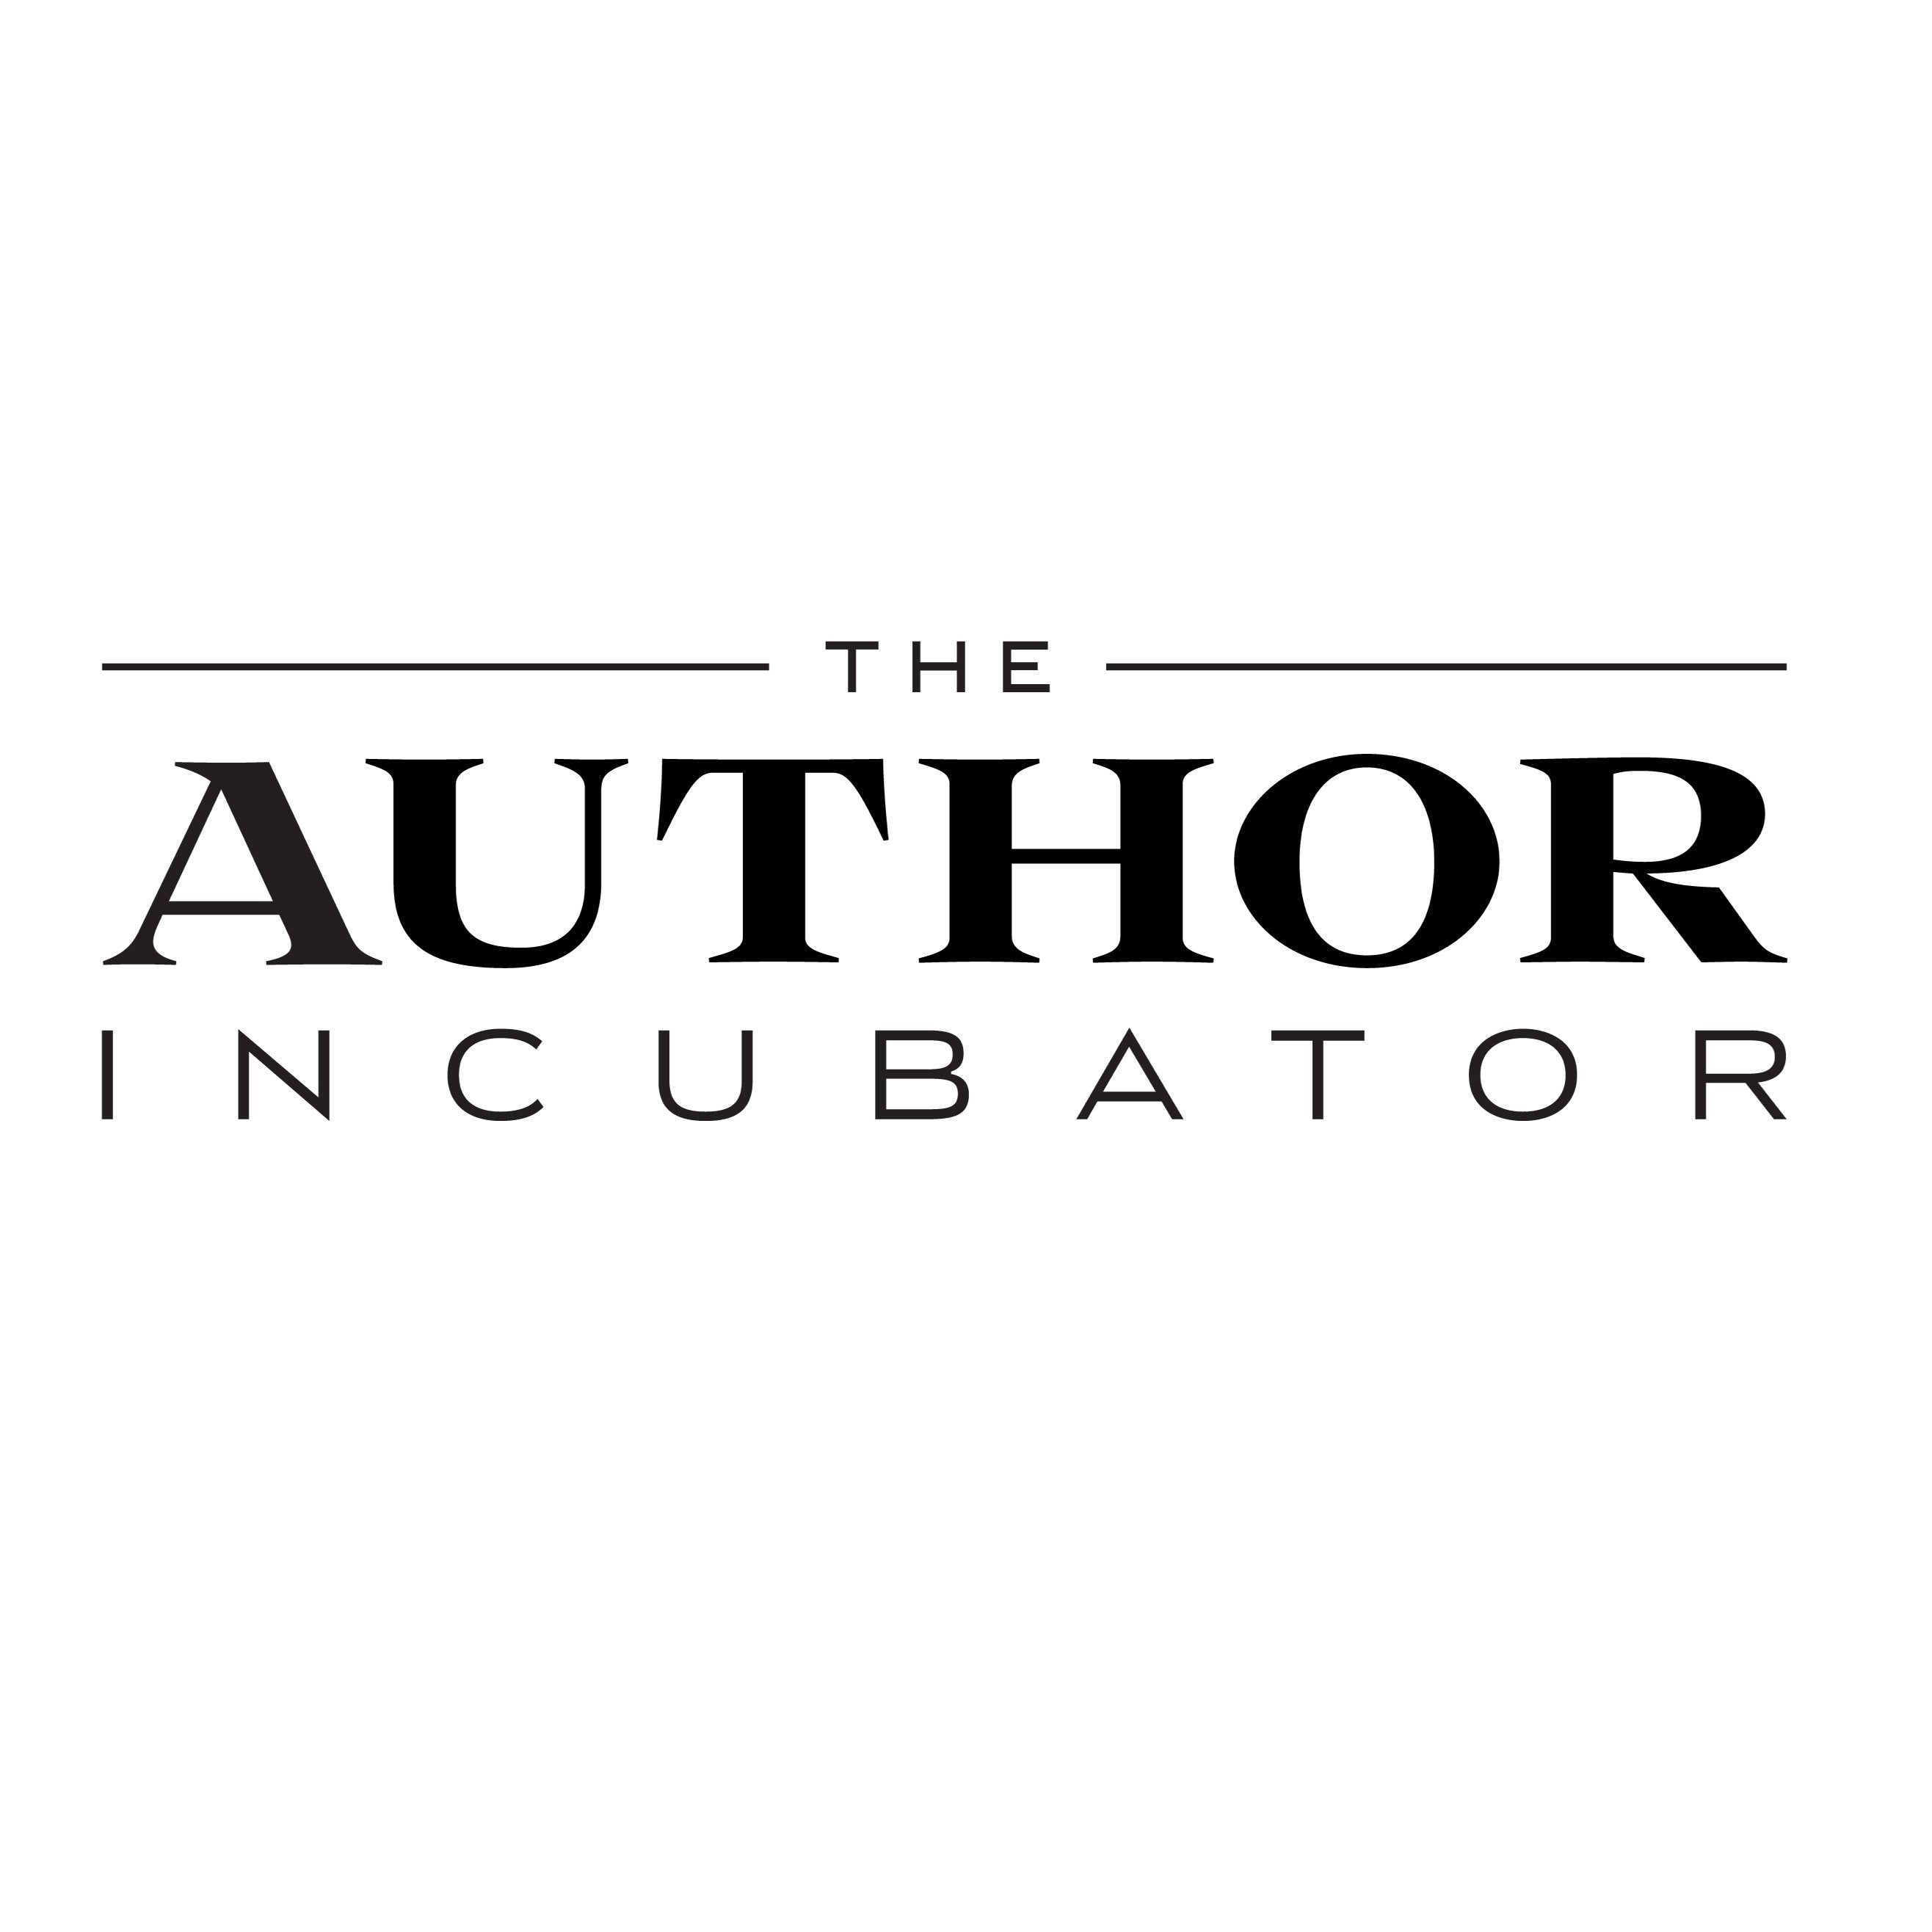 The Author Incubator